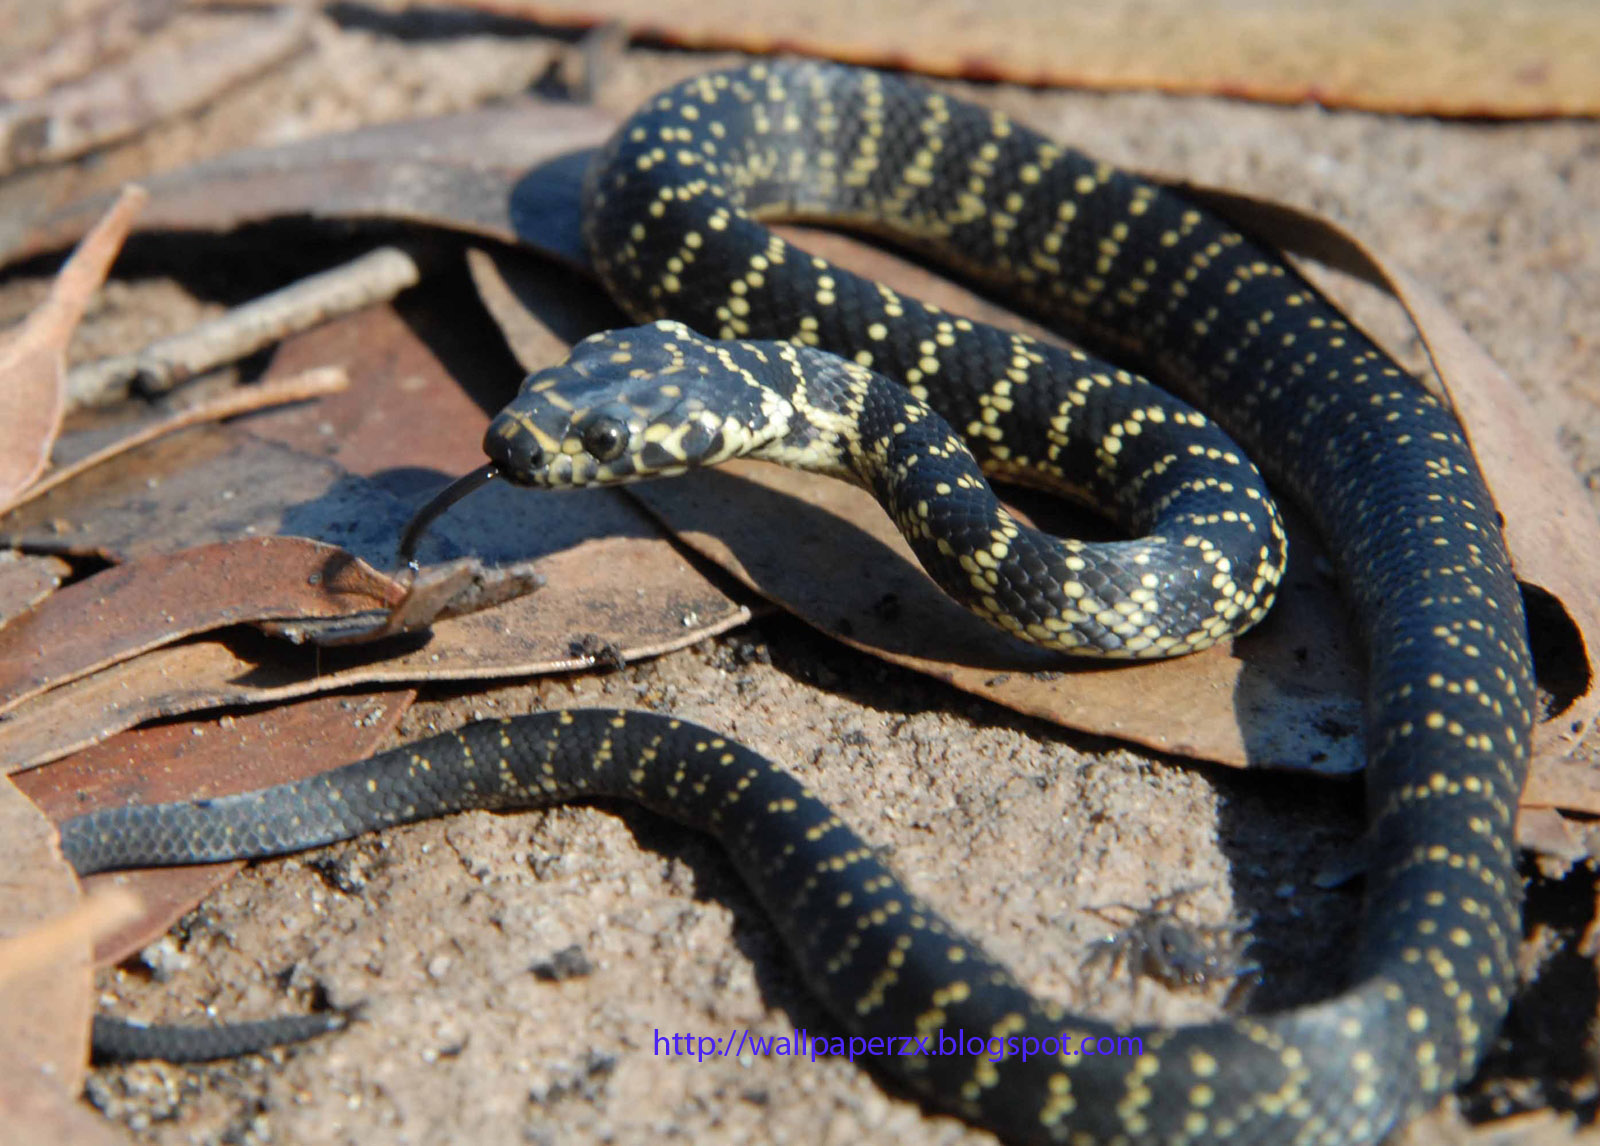 Hd 3d Snake Wallpapers Wallpapers Hq Amazing Snakes Hd Wallpapers